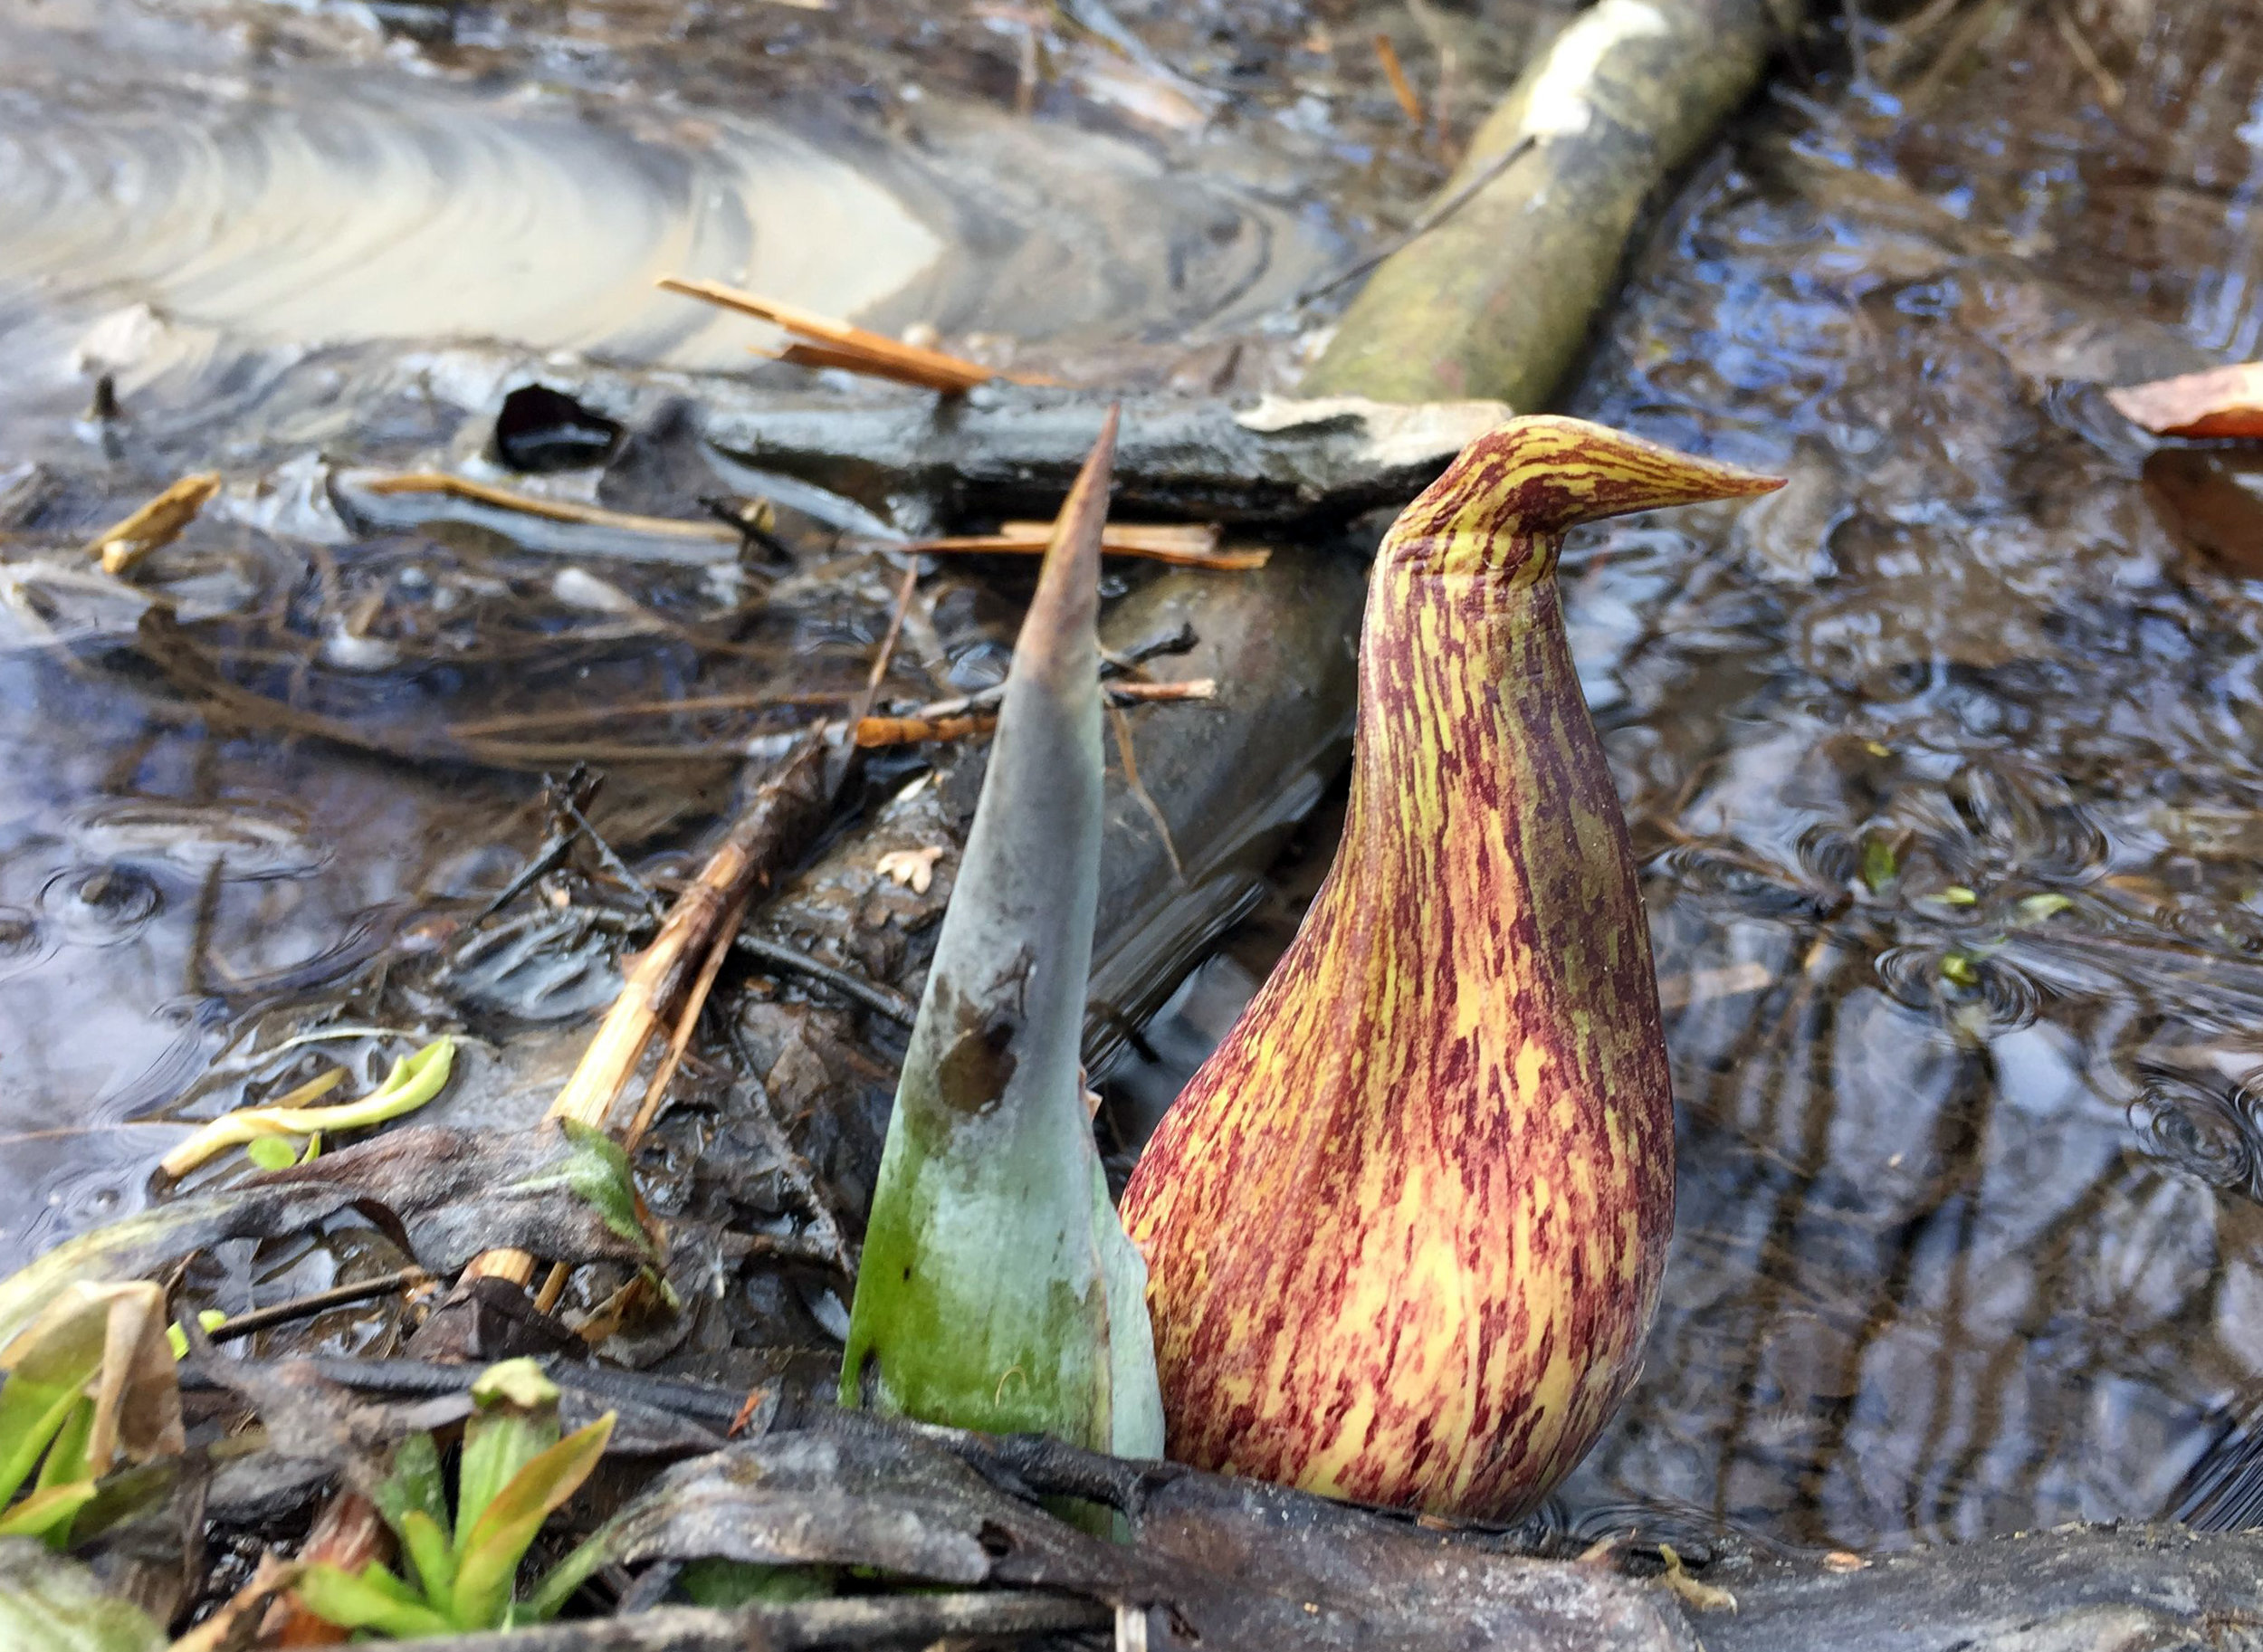 Skunk Cabbage found in its preferred habitat: wet woods